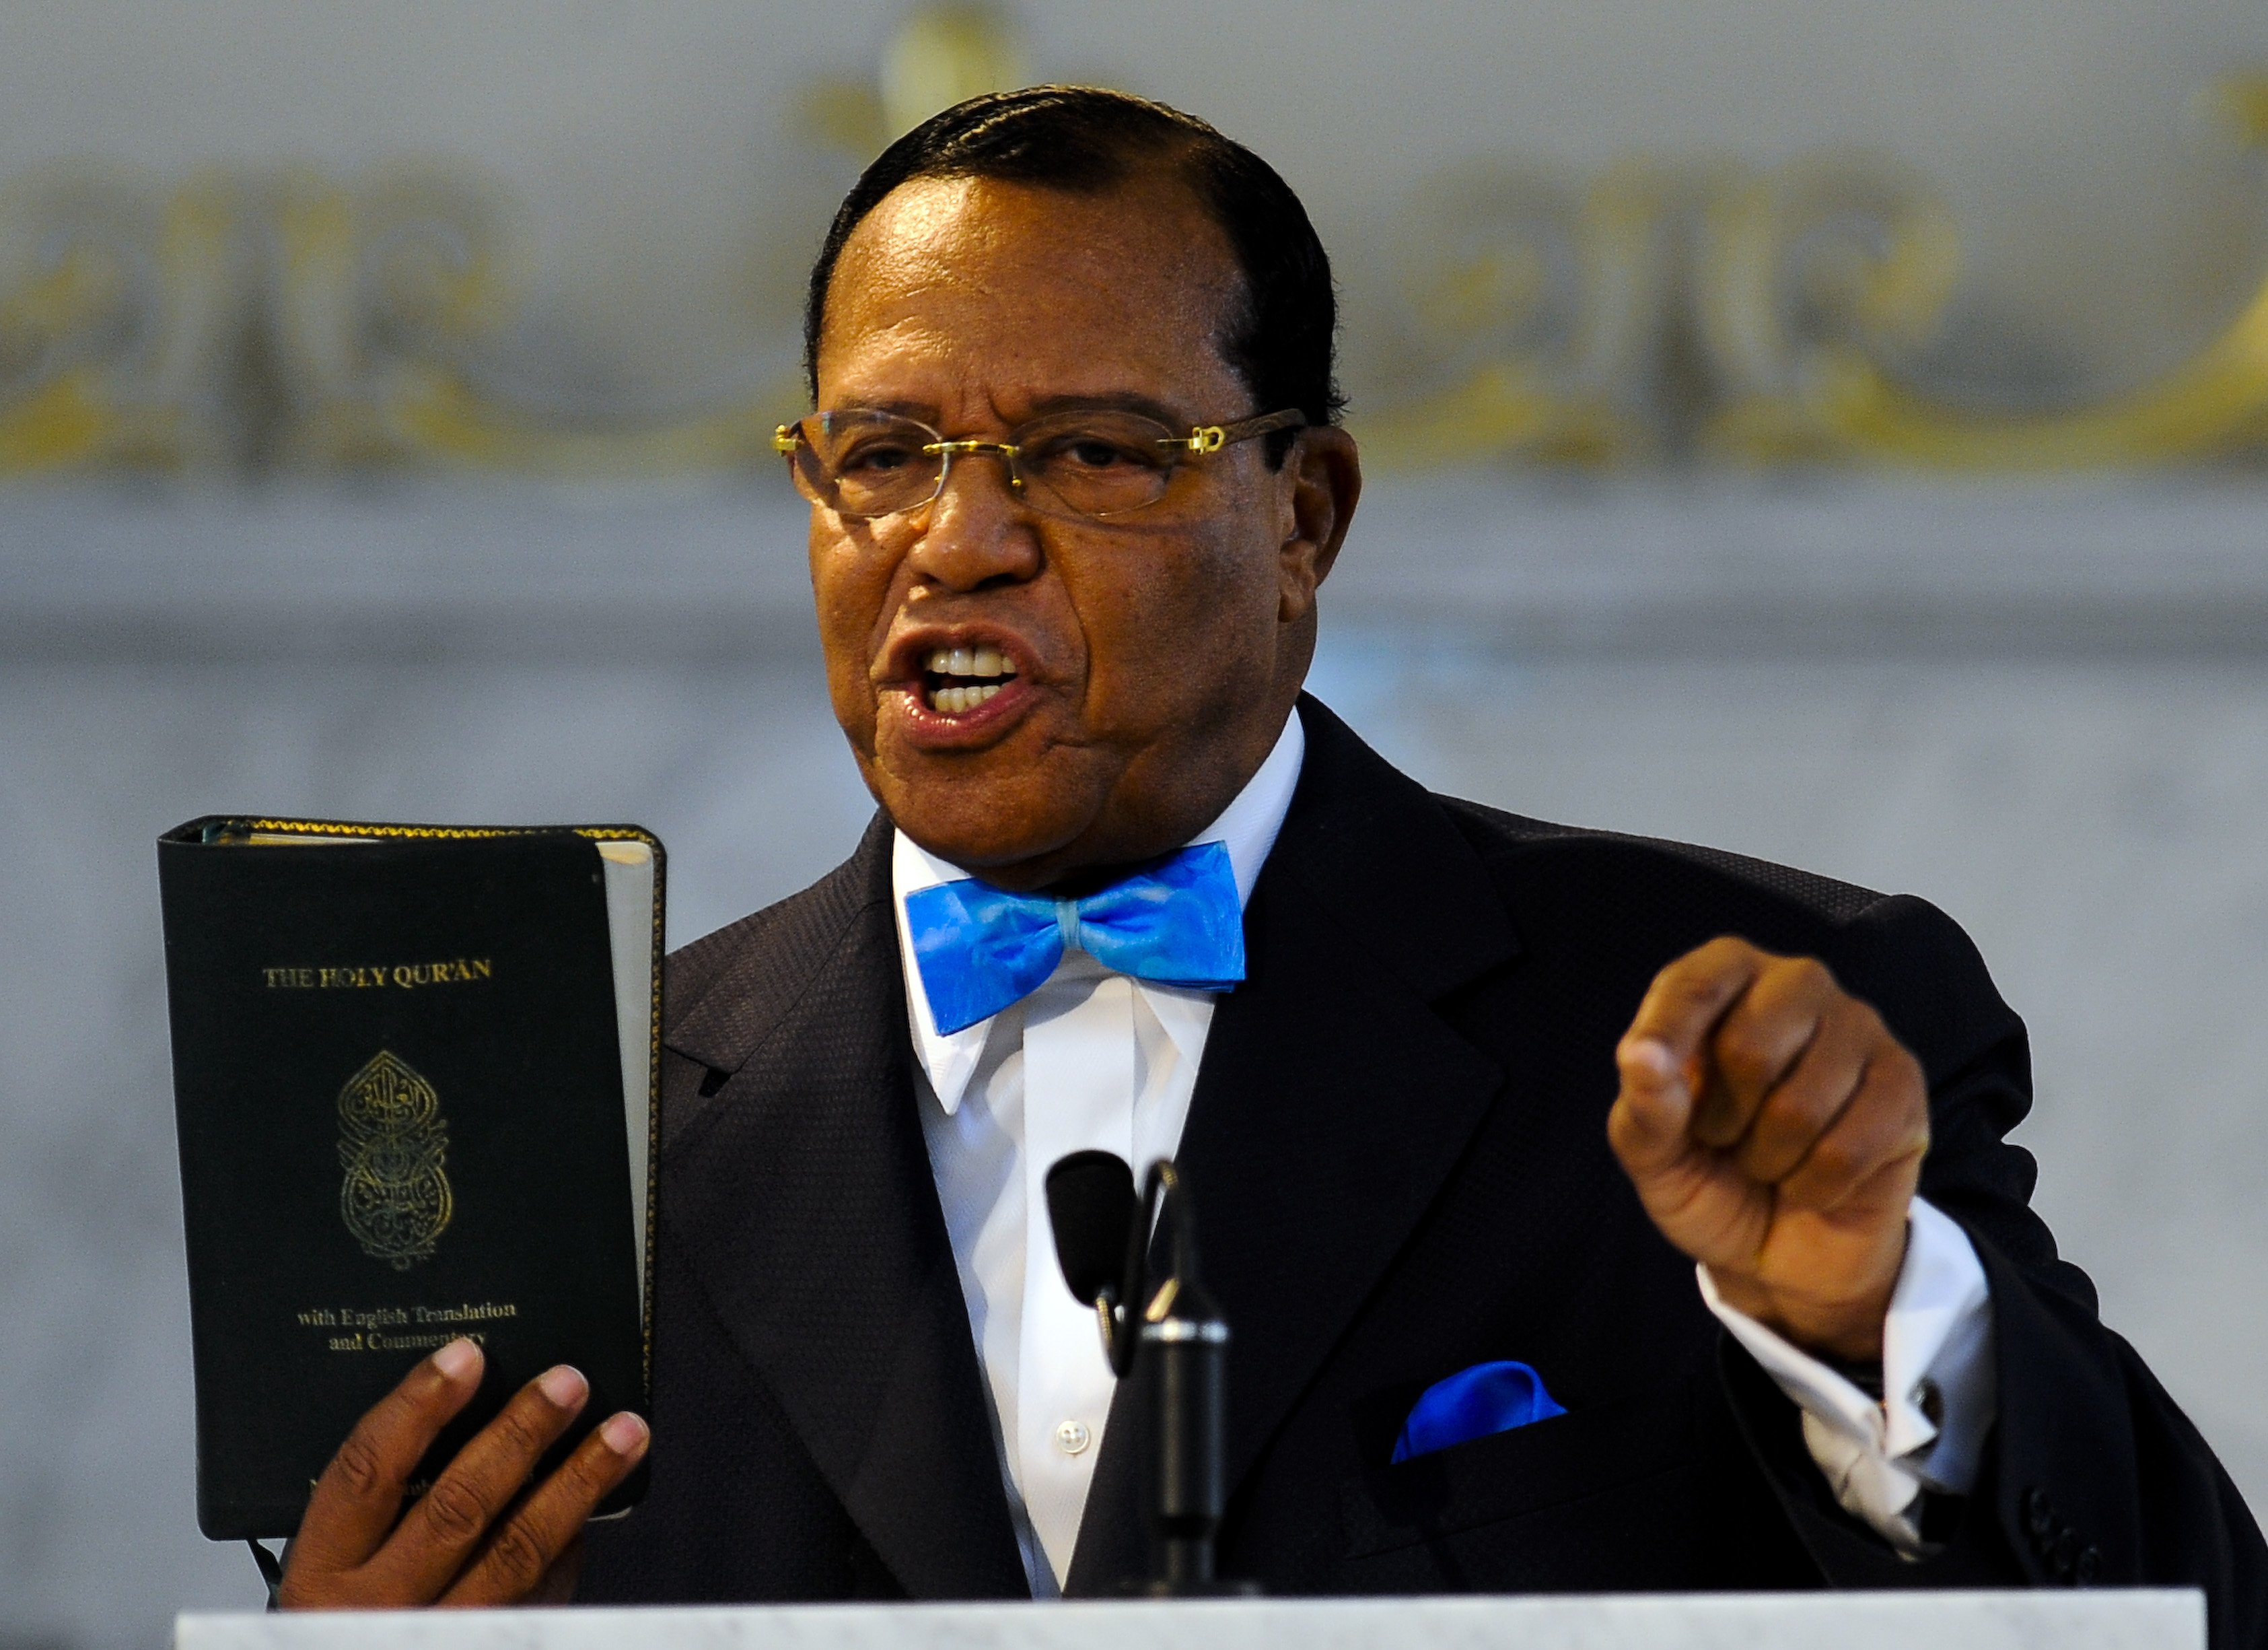 Nation of Islam lashes out at 3 black members of Congress calling them sellouts for denouncing Farrakhan